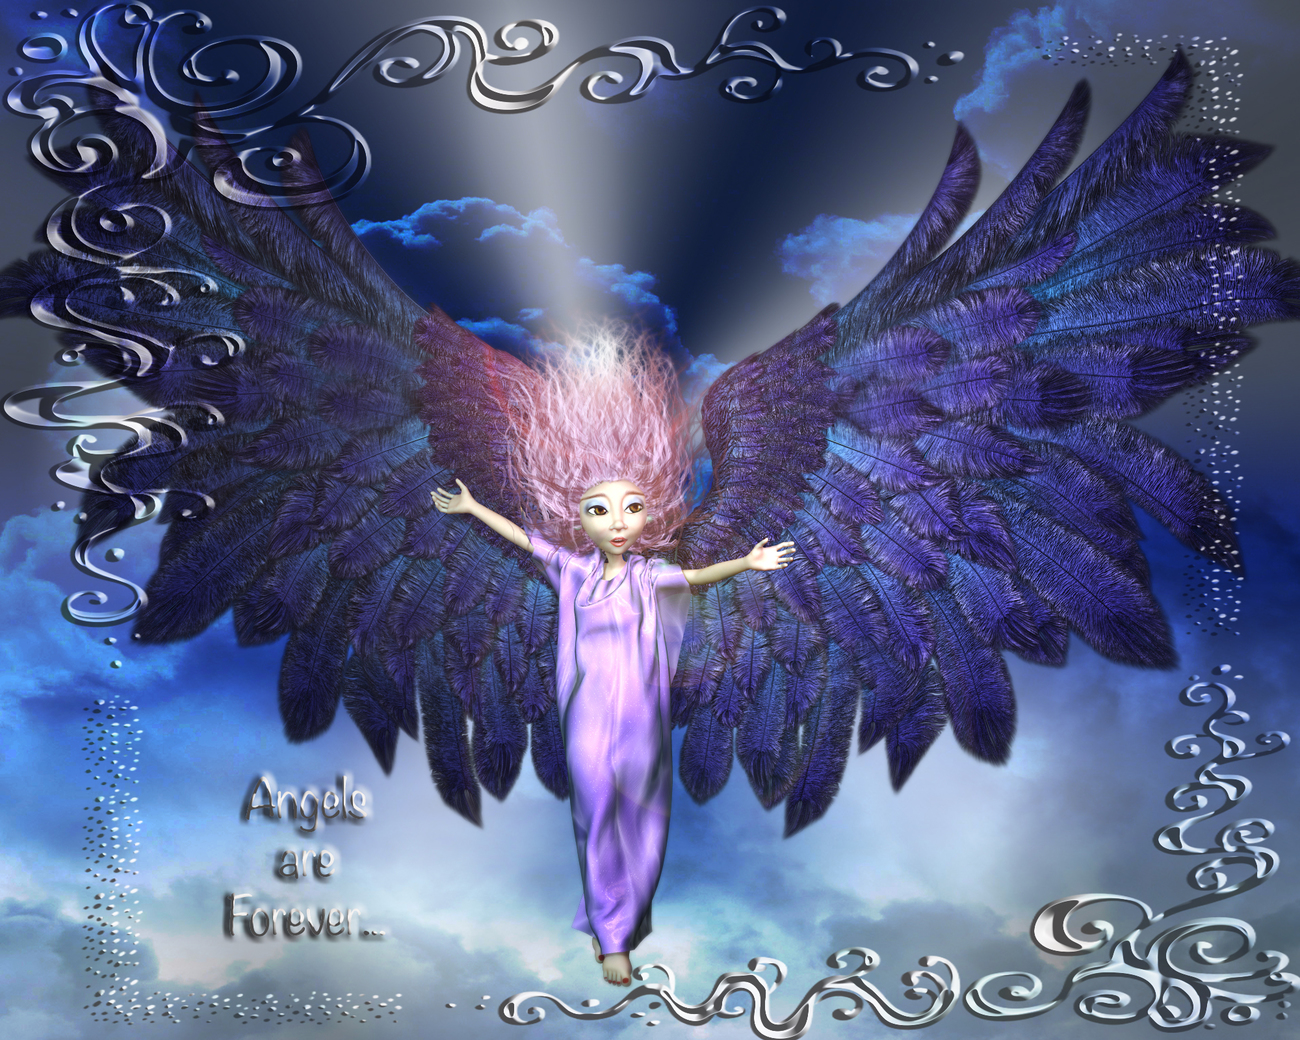 Angels Are Forever... by Goldenthrush